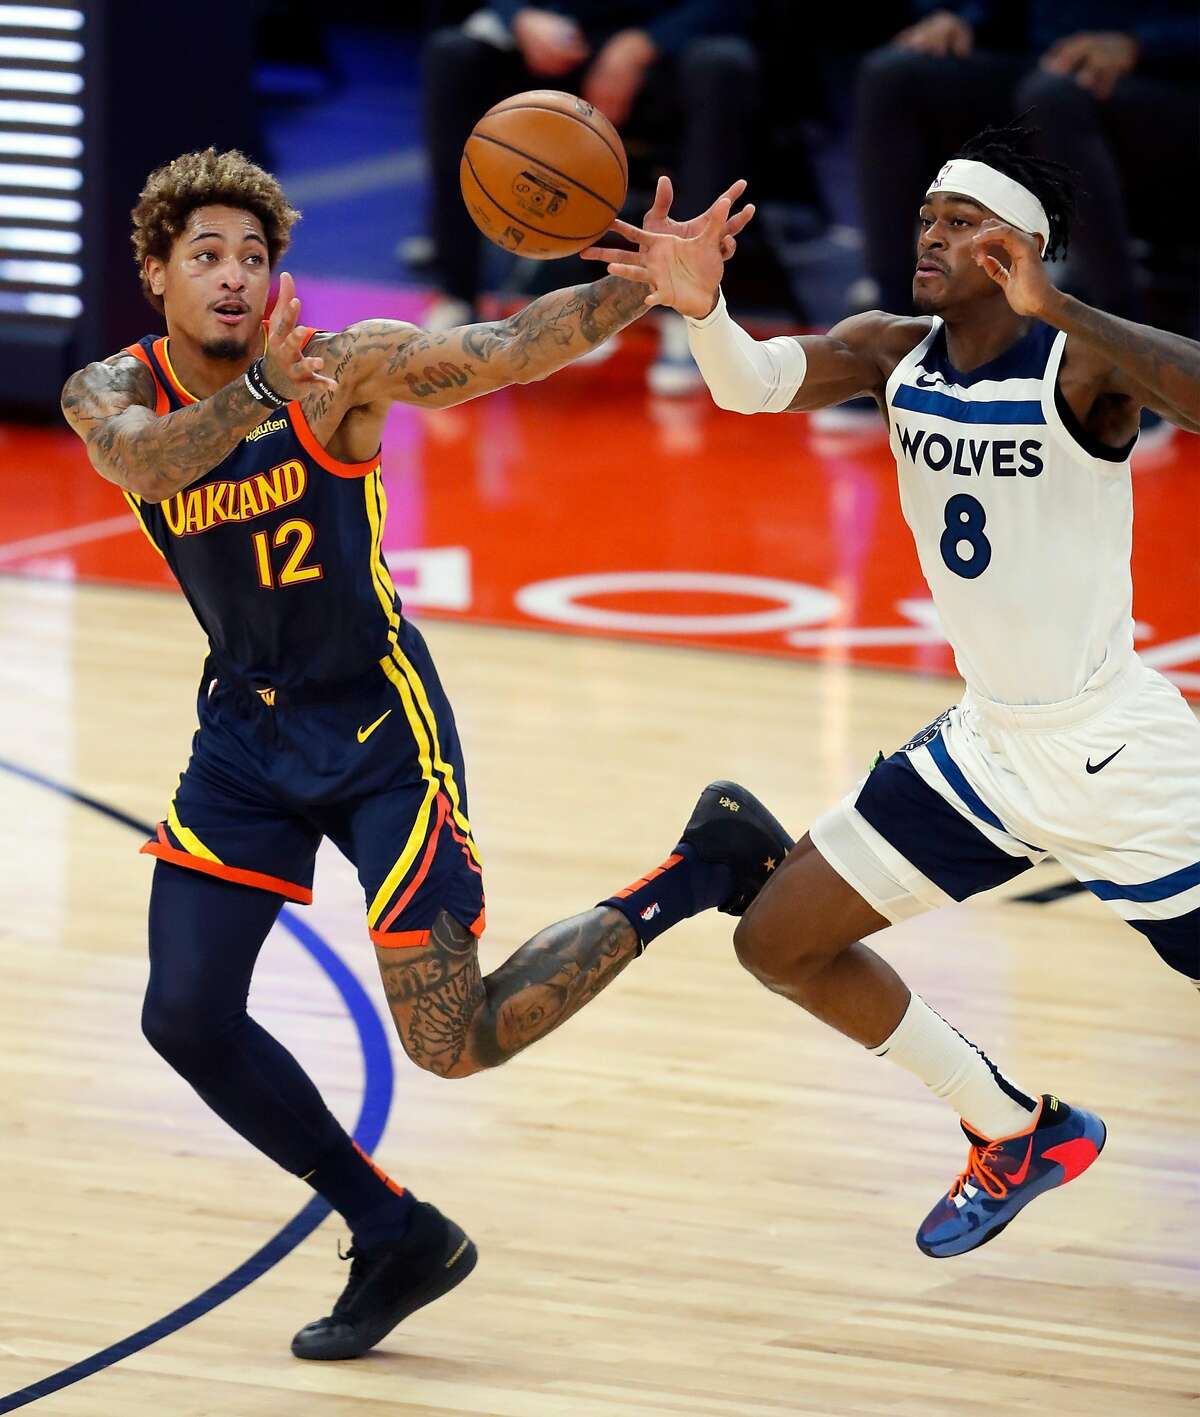 Minnesota Timberwolves' Jarred Vanderbilt deflects a pass intended for Golden State Warriors' Kelly Oubre, Jr. in 2nd quarter during NBA game at Chase Center in San Francisco, Calif., on Wednesday, January 27, 2021.